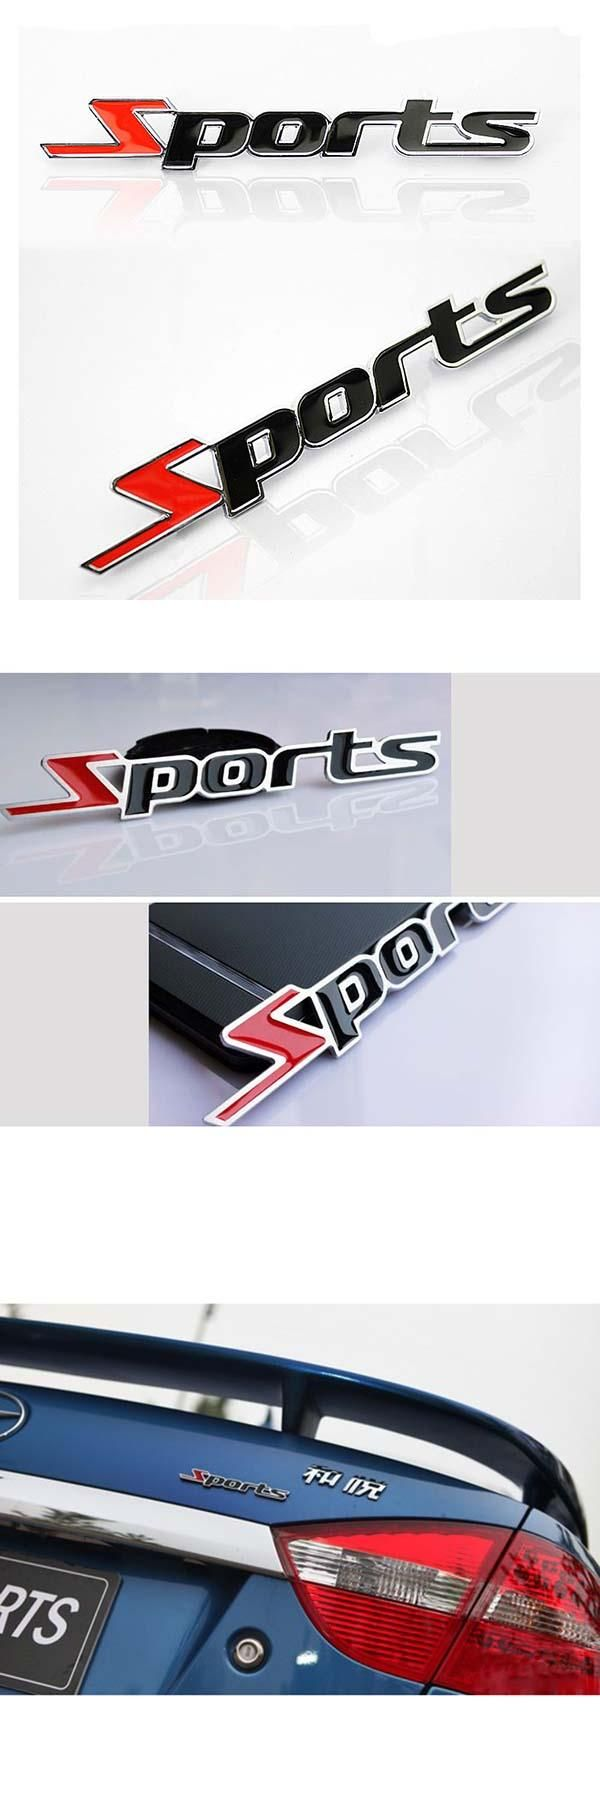 visit to buy sports emblem car motorcycle sticker 3d metal chrome letters decal styling